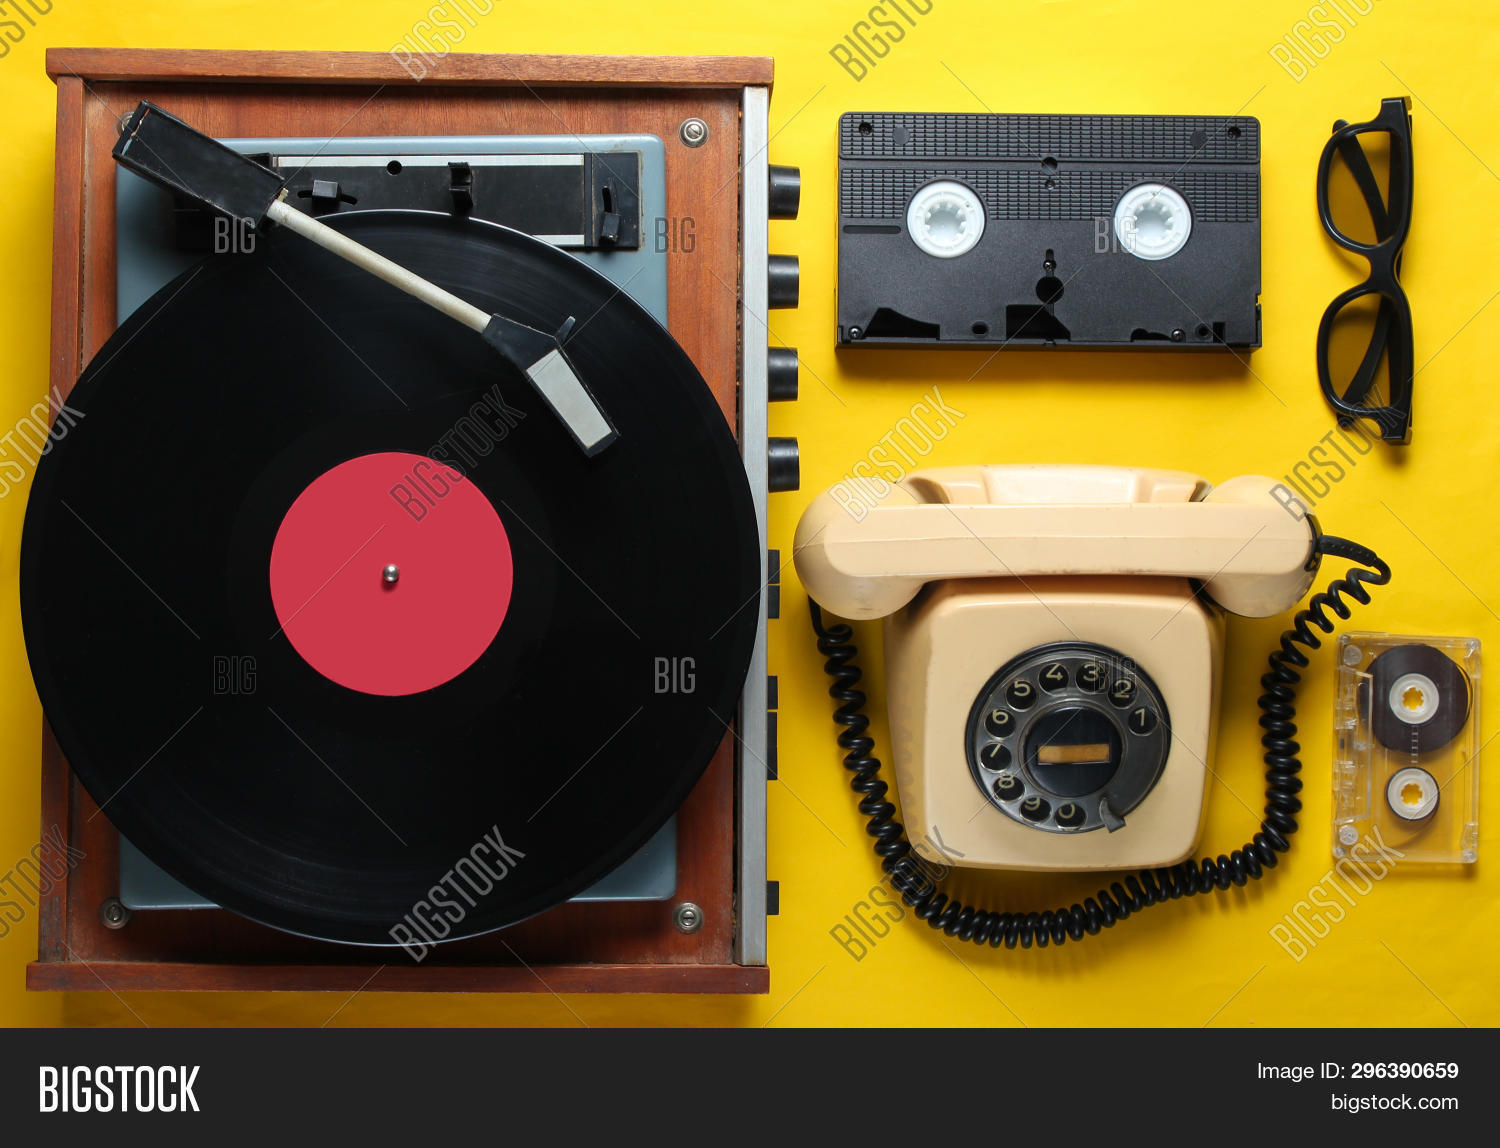 Old-fashioned Objects Image & Photo (Free Trial)   Bigstock